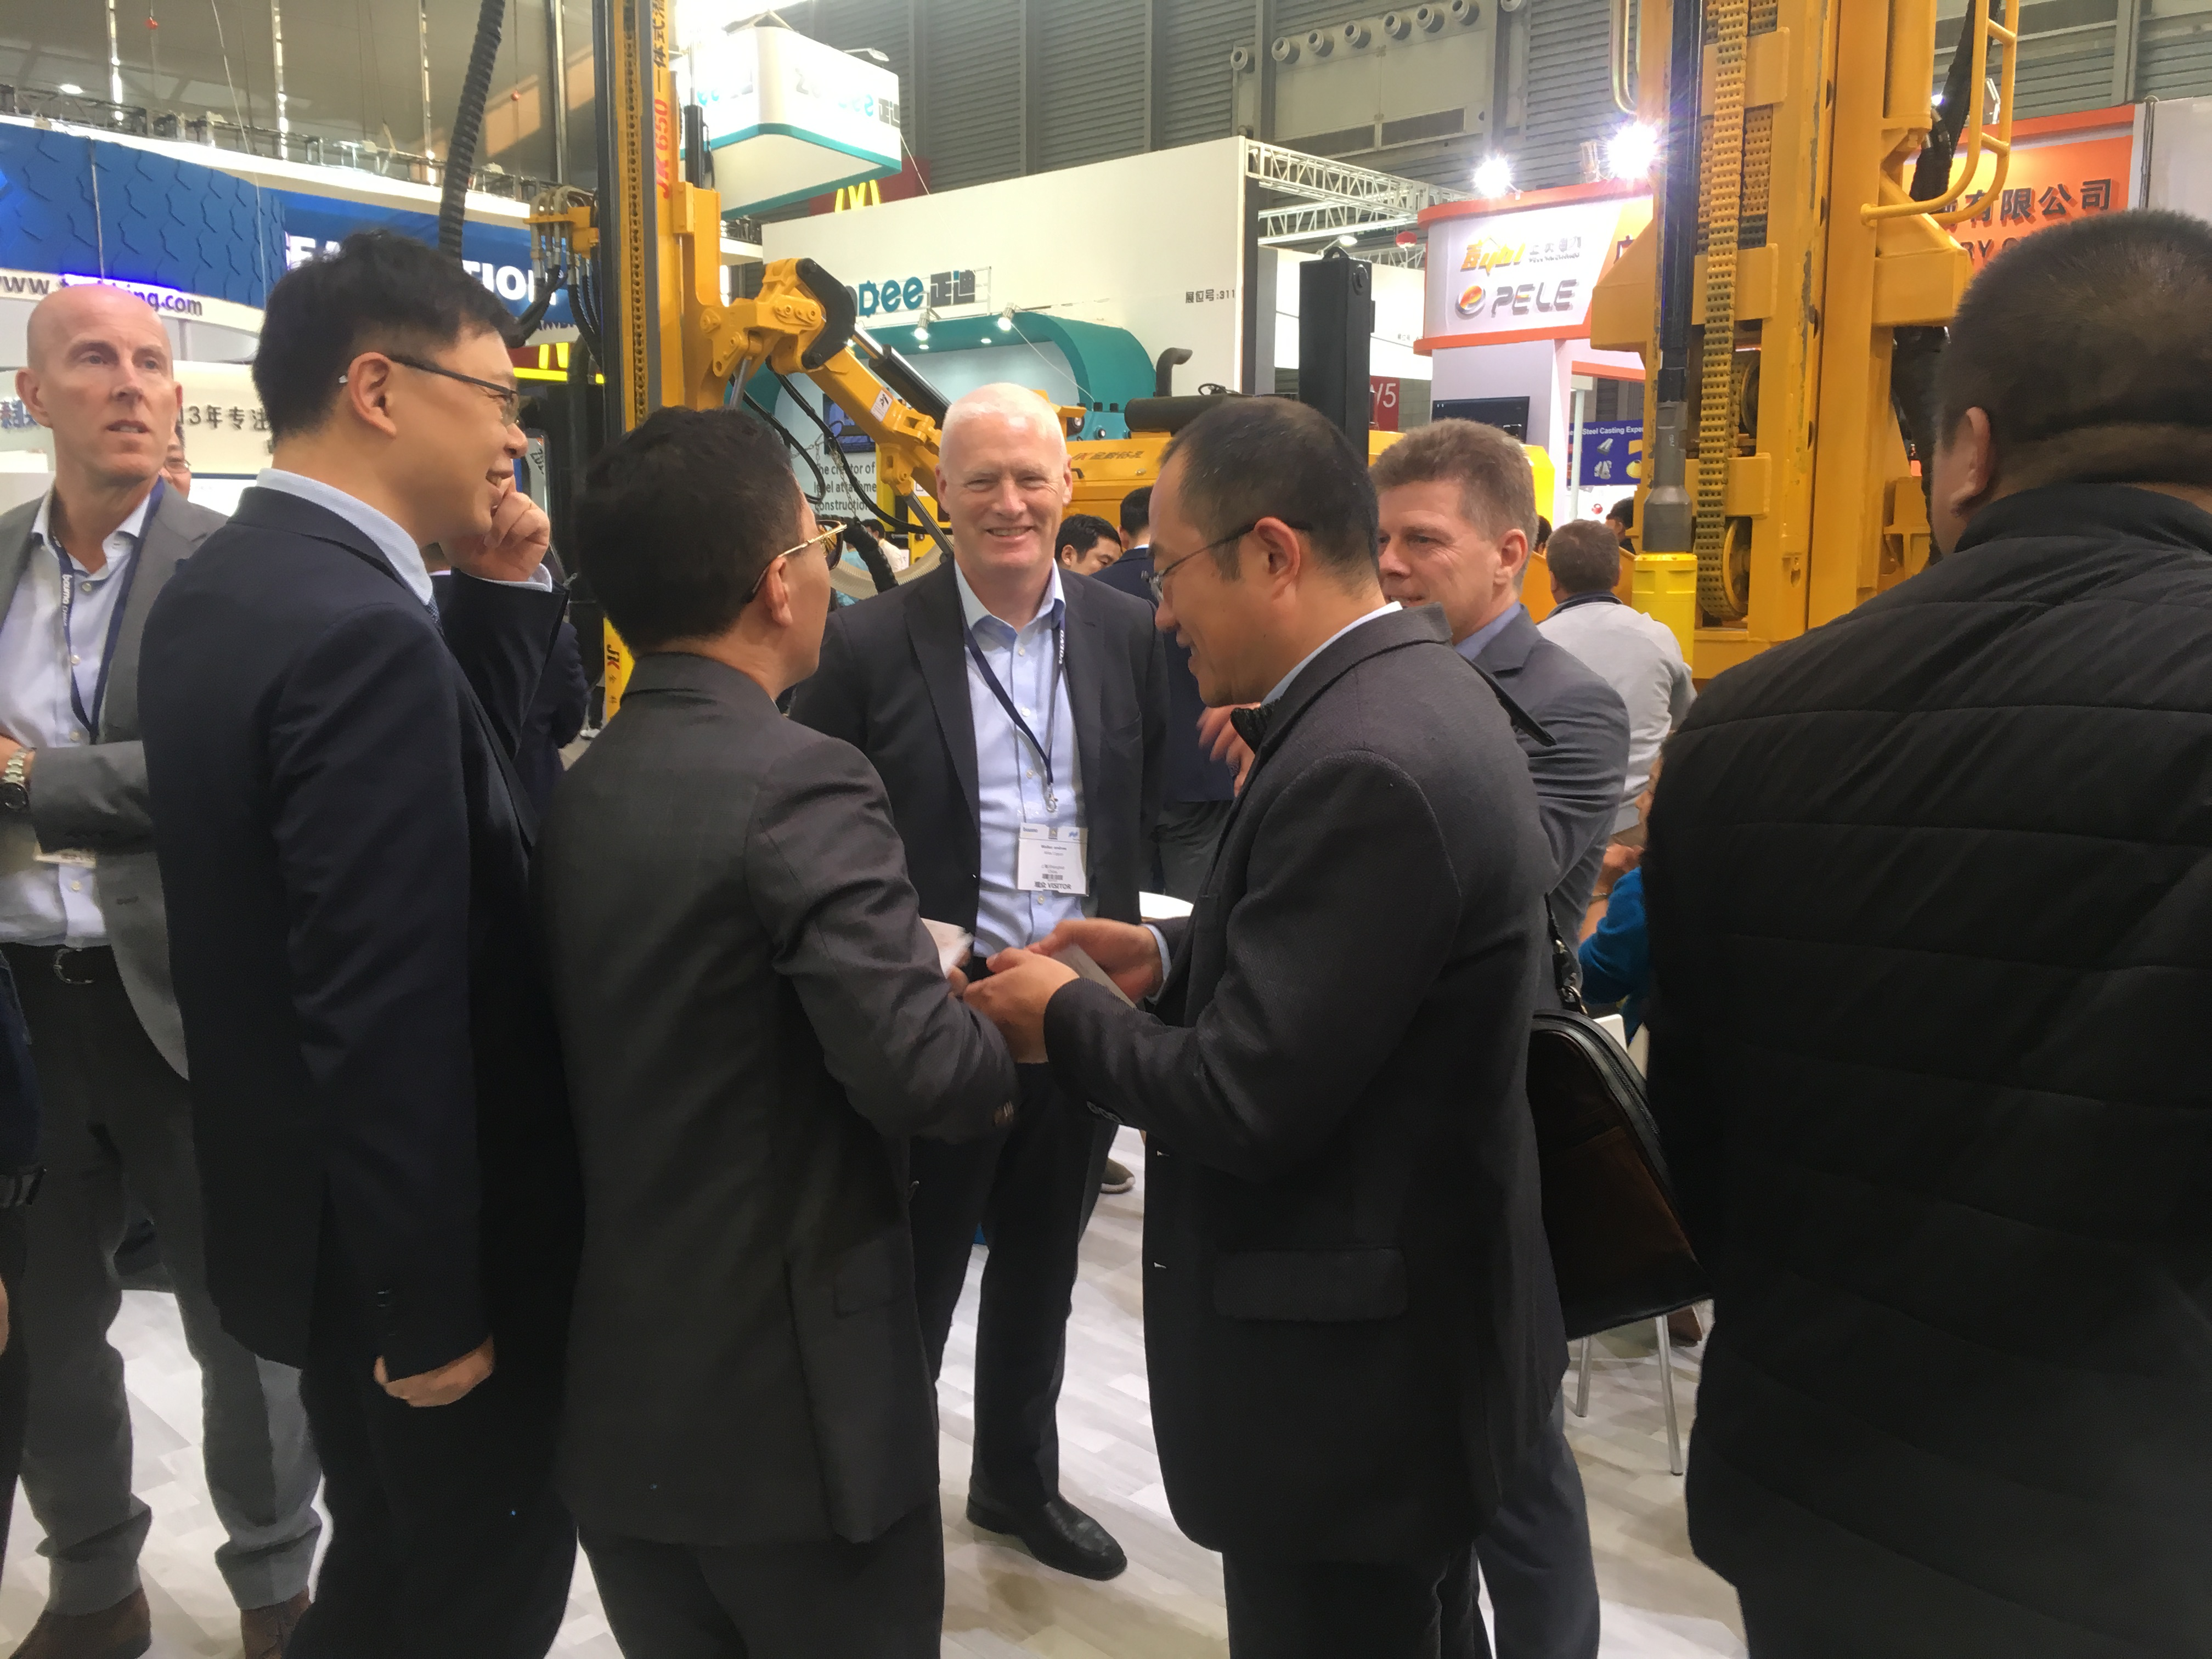 JK Drilling's successful exhibition - 2018 bauma CHINA in Shanghai from Nov.27-30.